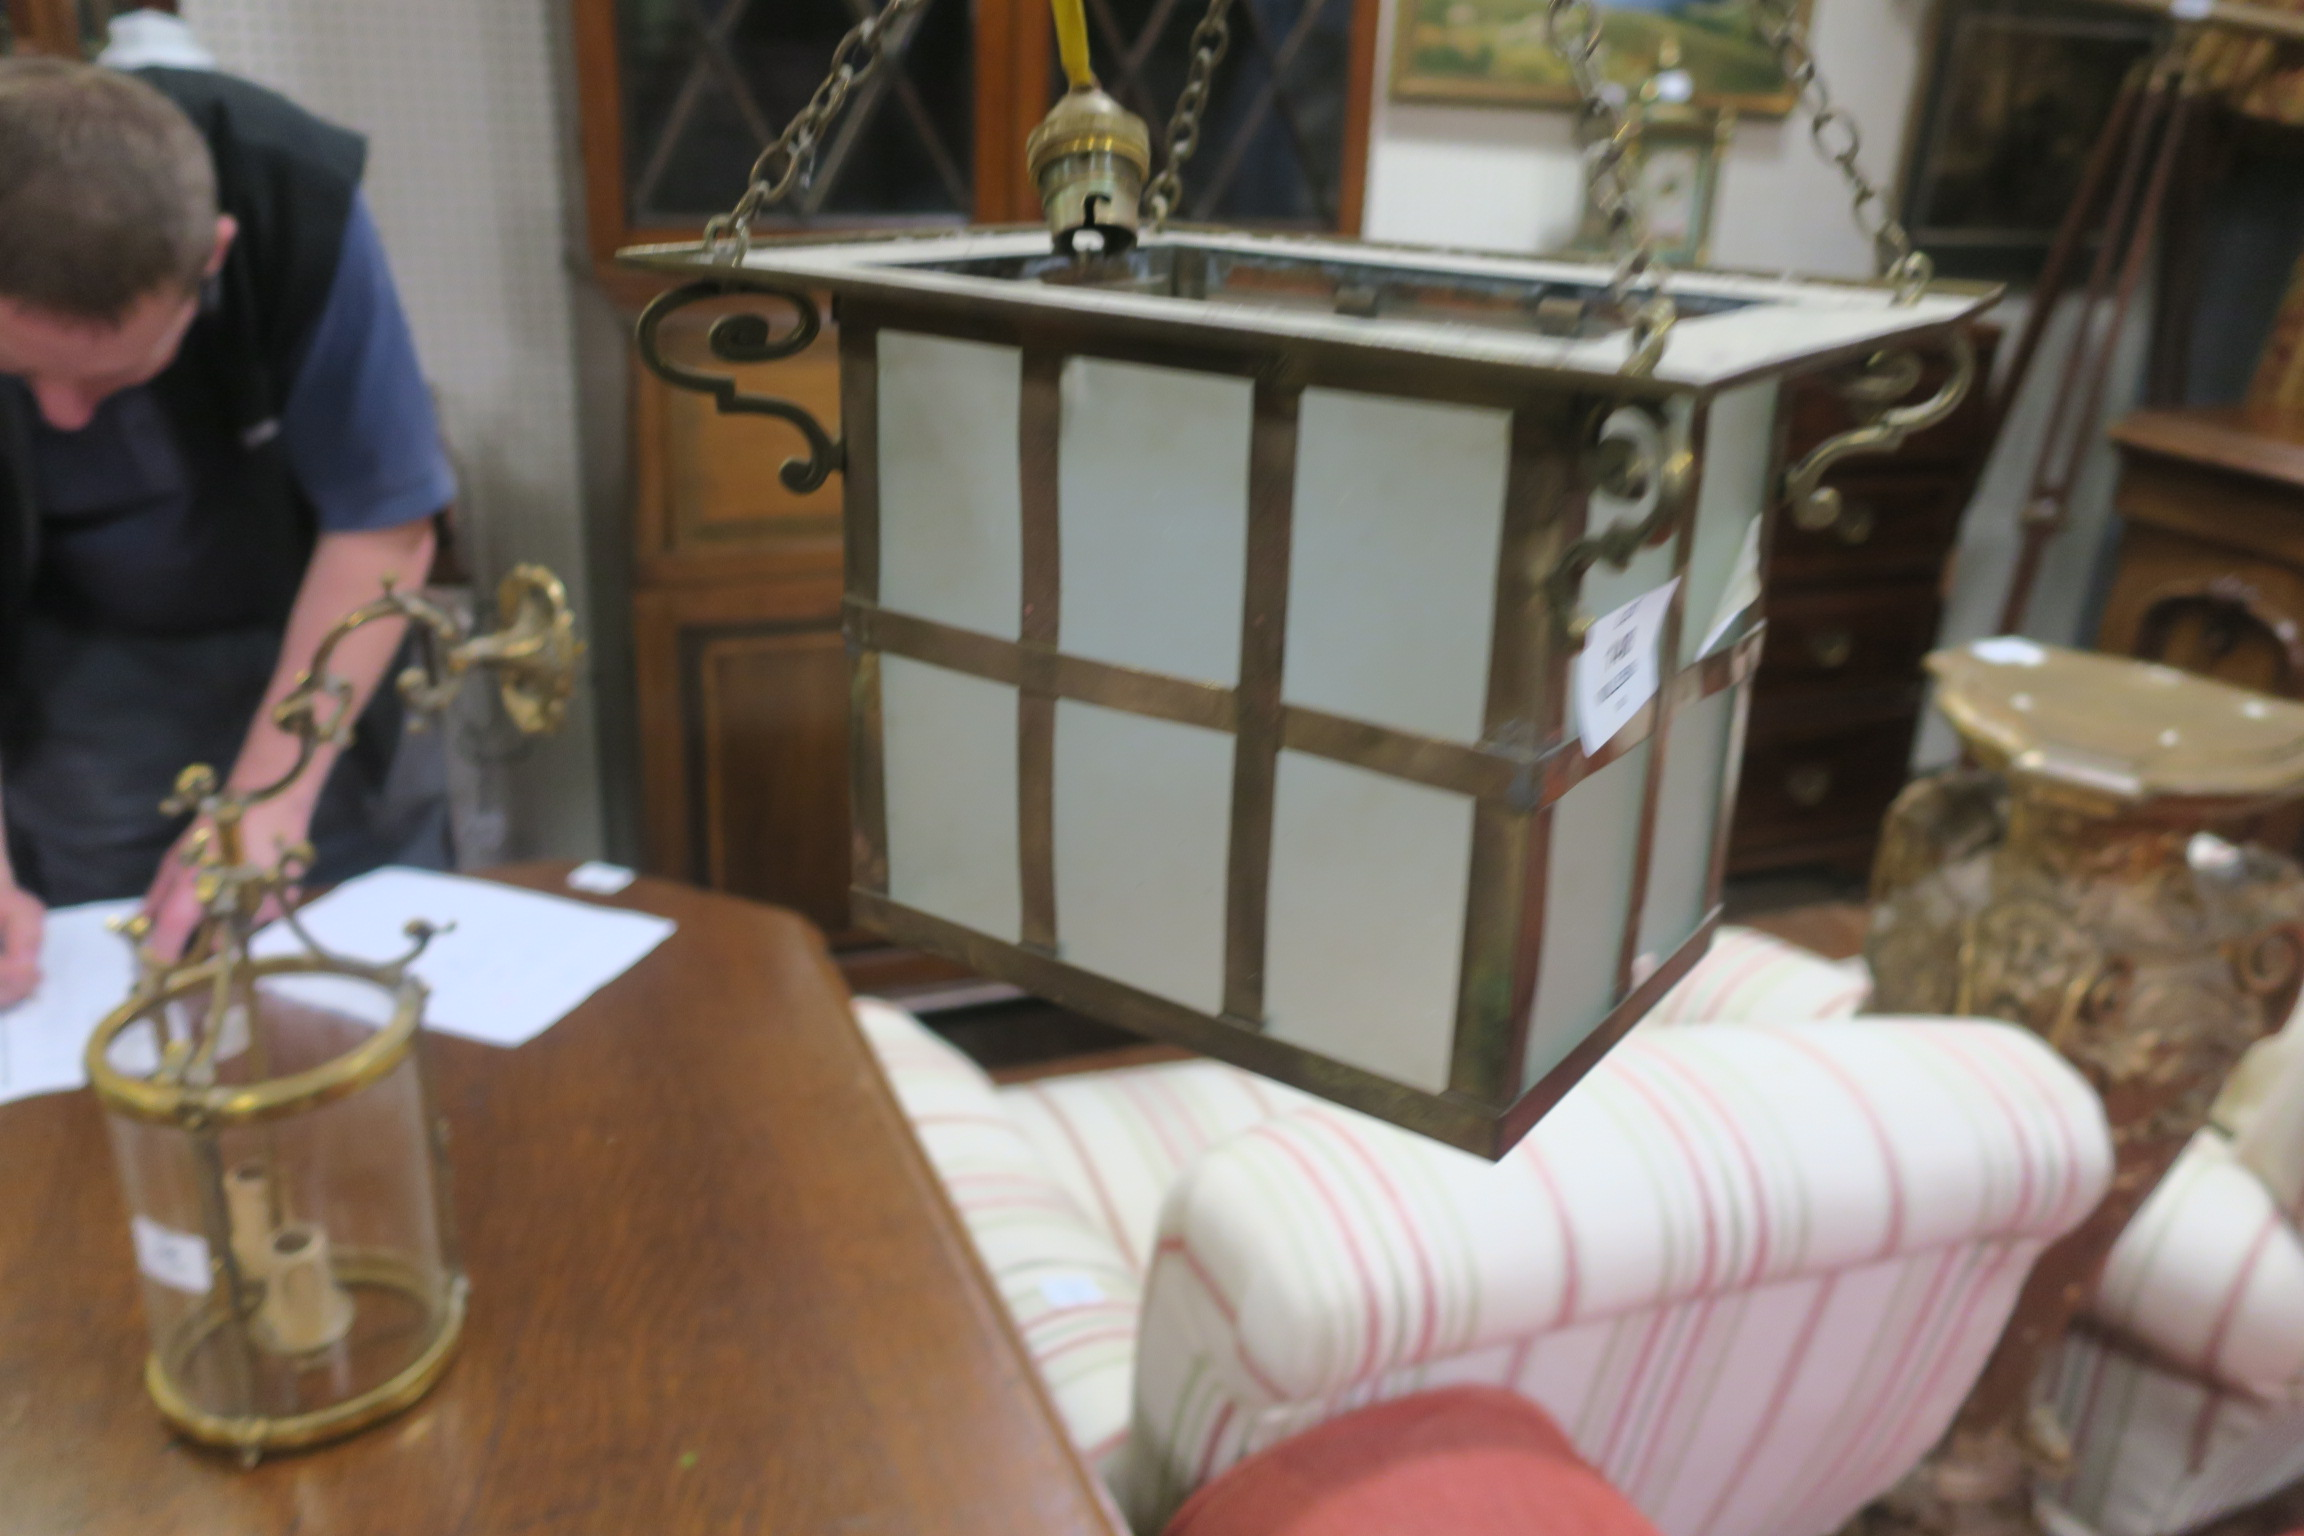 Lot 654 - A CIRCA 1950s BRASS AND FROSTED GLASS SINGLE LIGHT HALL LANTERN of square form with scroll